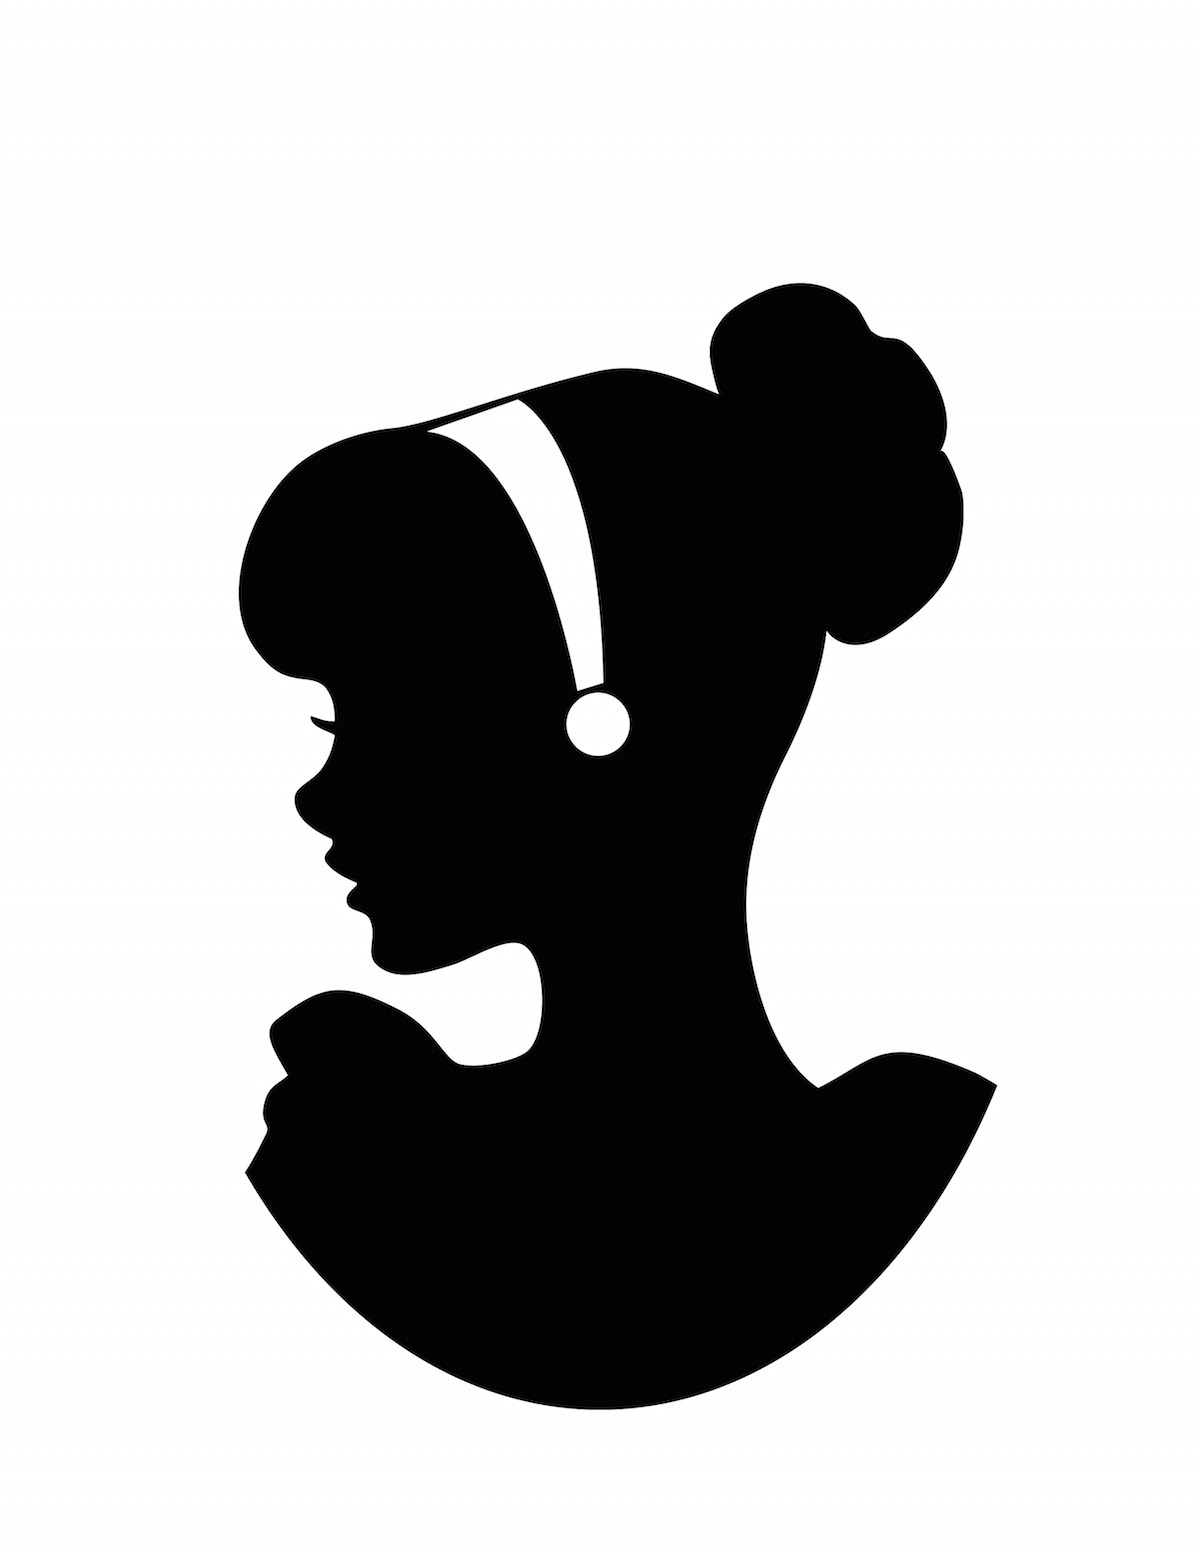 disney cinderella silhouette at getdrawings com free for clip art castle door hinges clip art castles fairy tales